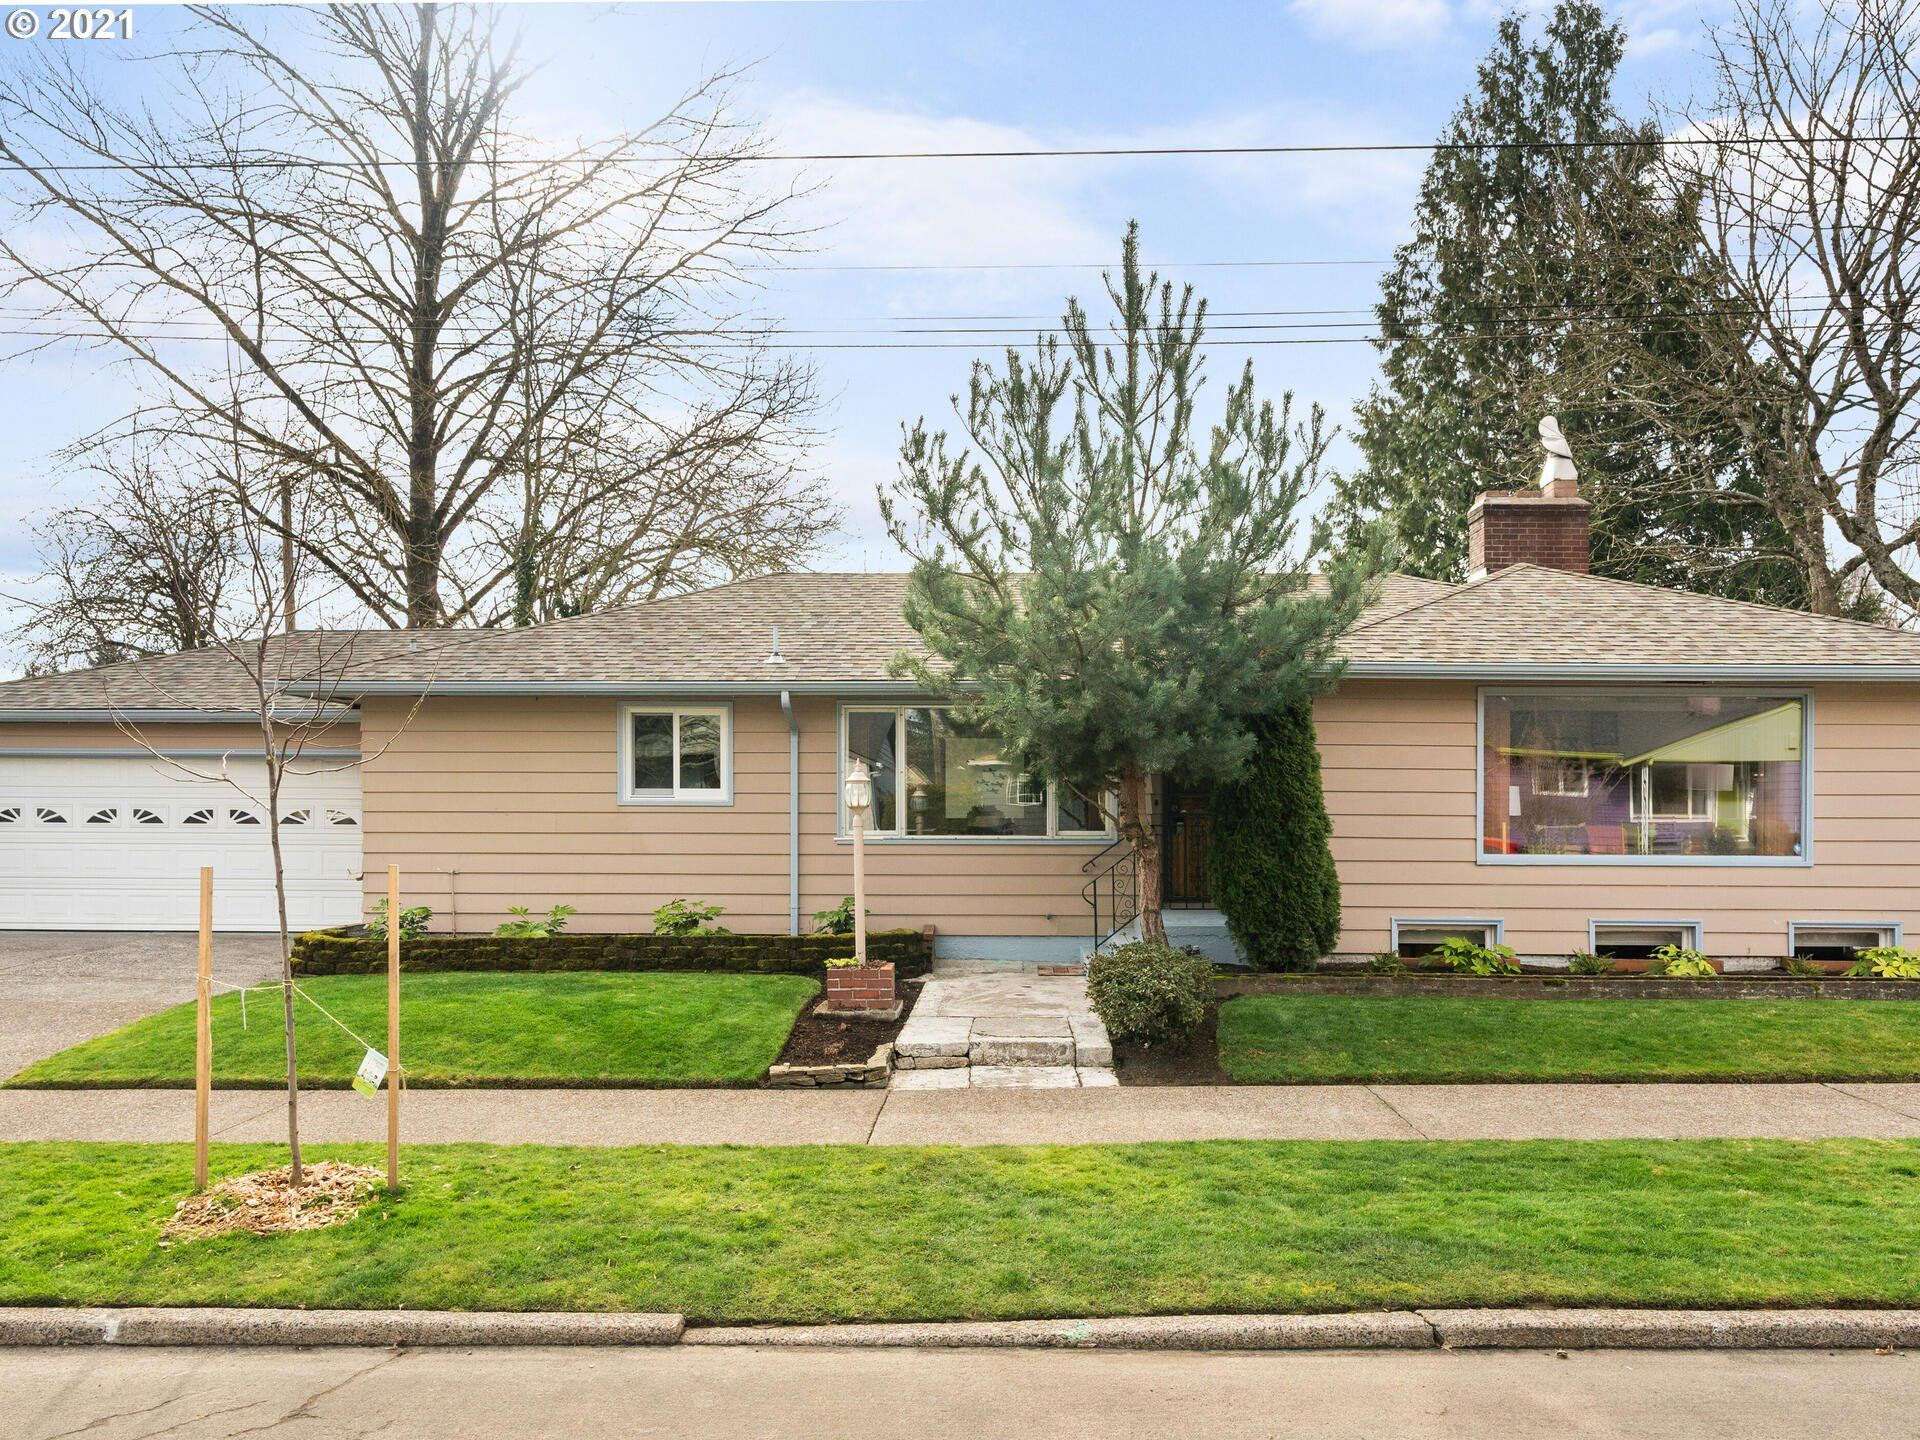 7706 SE WOODWARD ST, Portland, OR 97206 - MLS#: 21285024